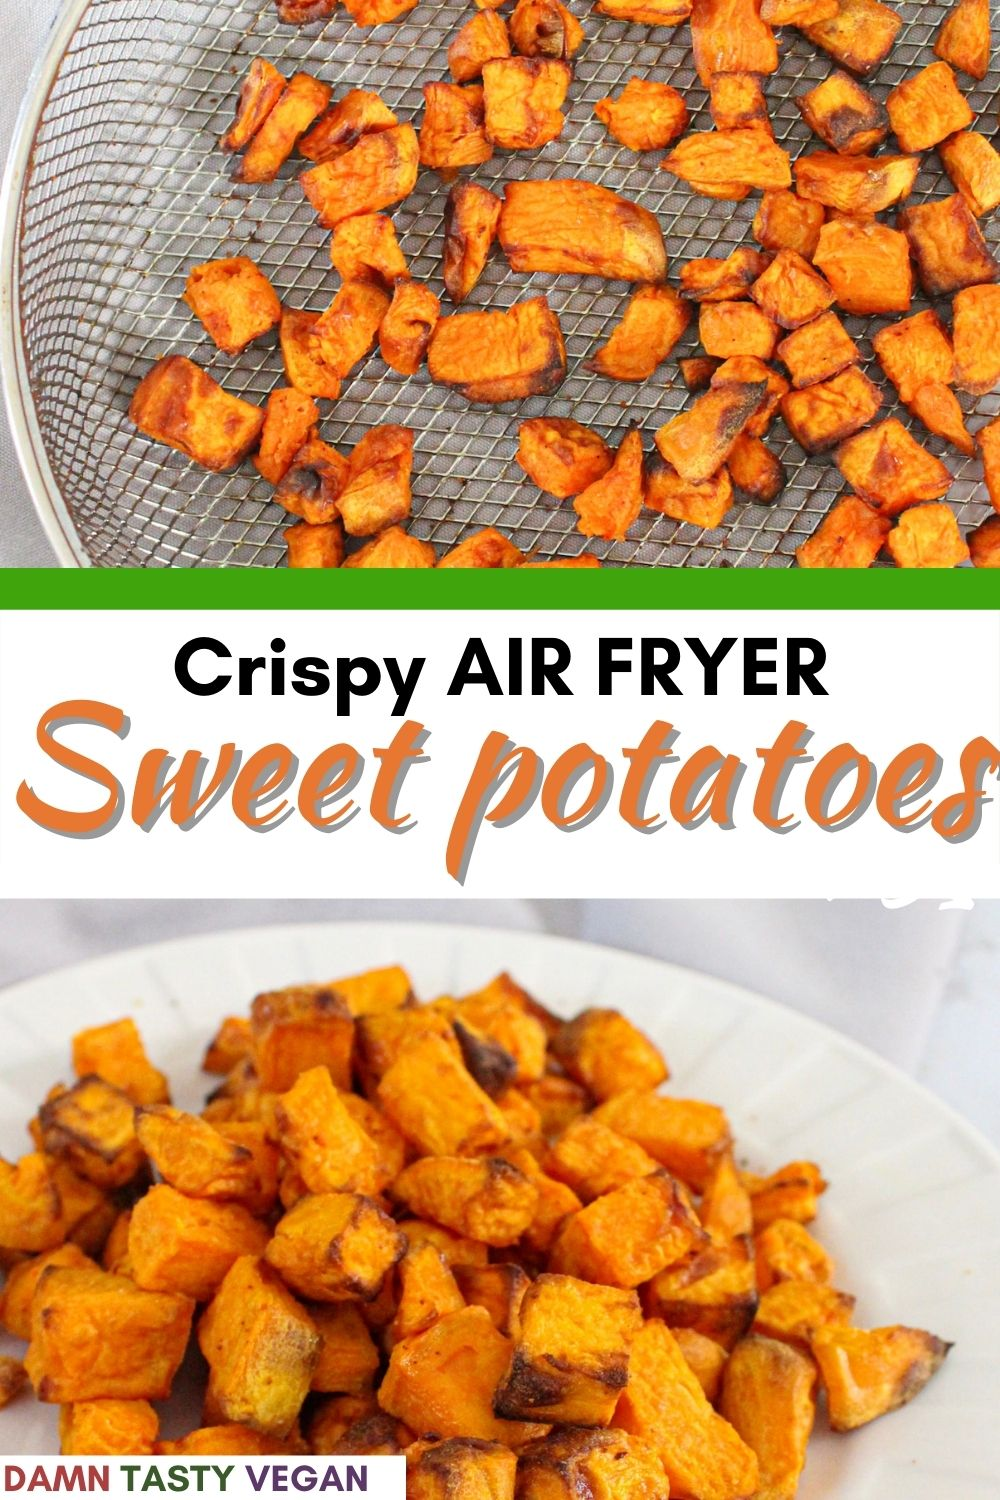 Sweet potato cubes on a plate with text overlay for pinterest.